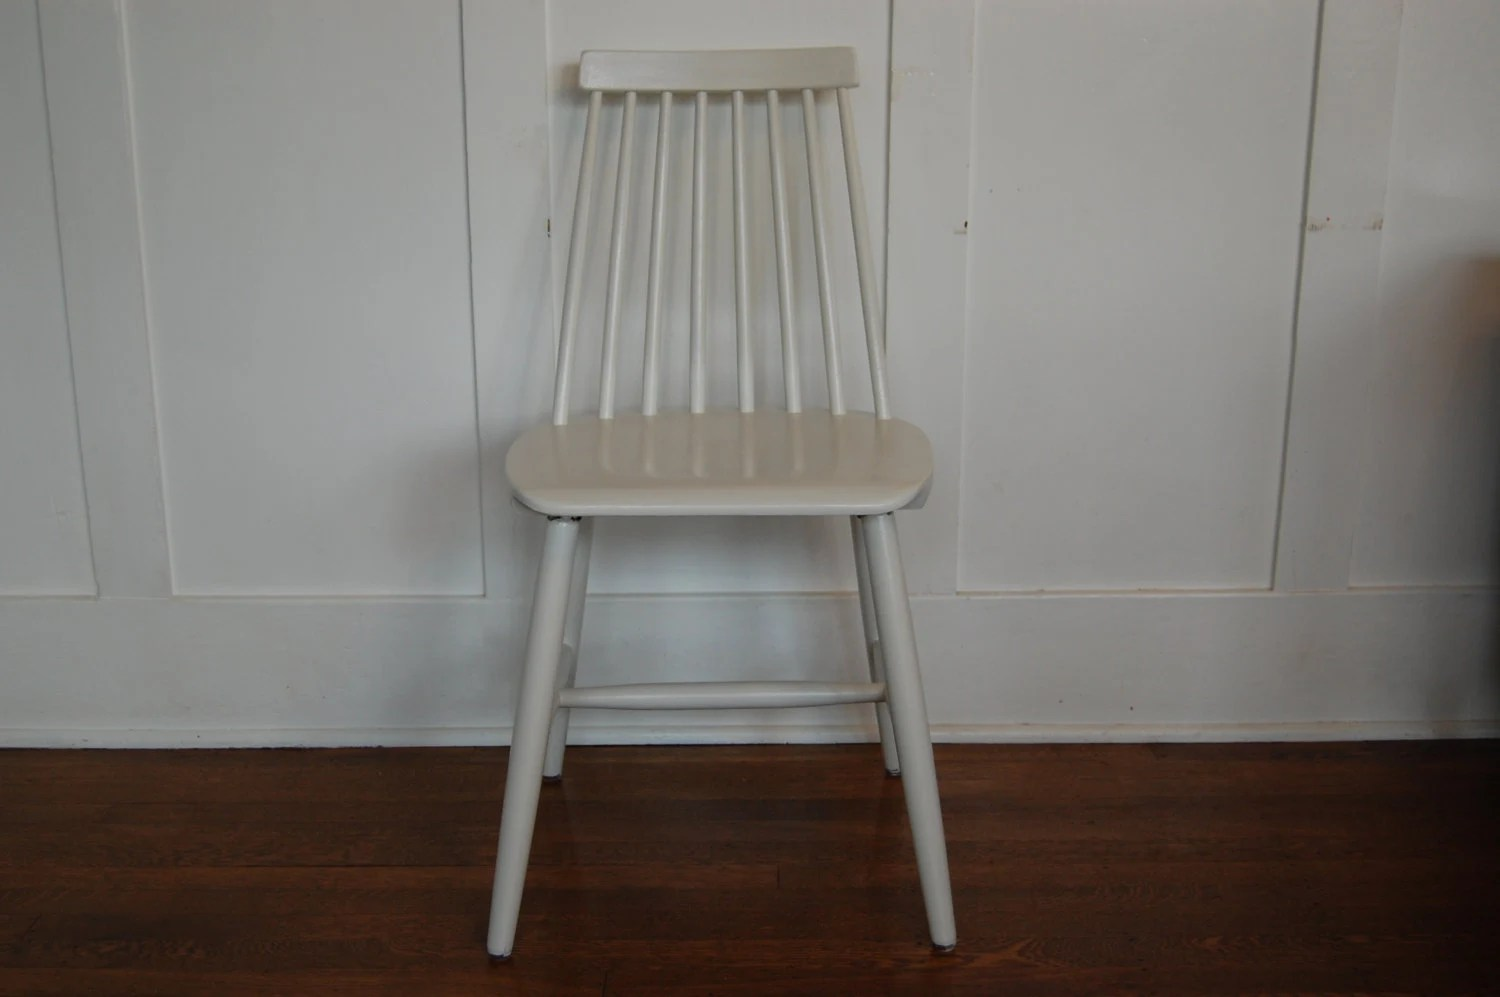 windsor style chairs bungee chair container store wooden painted white by midcentury55